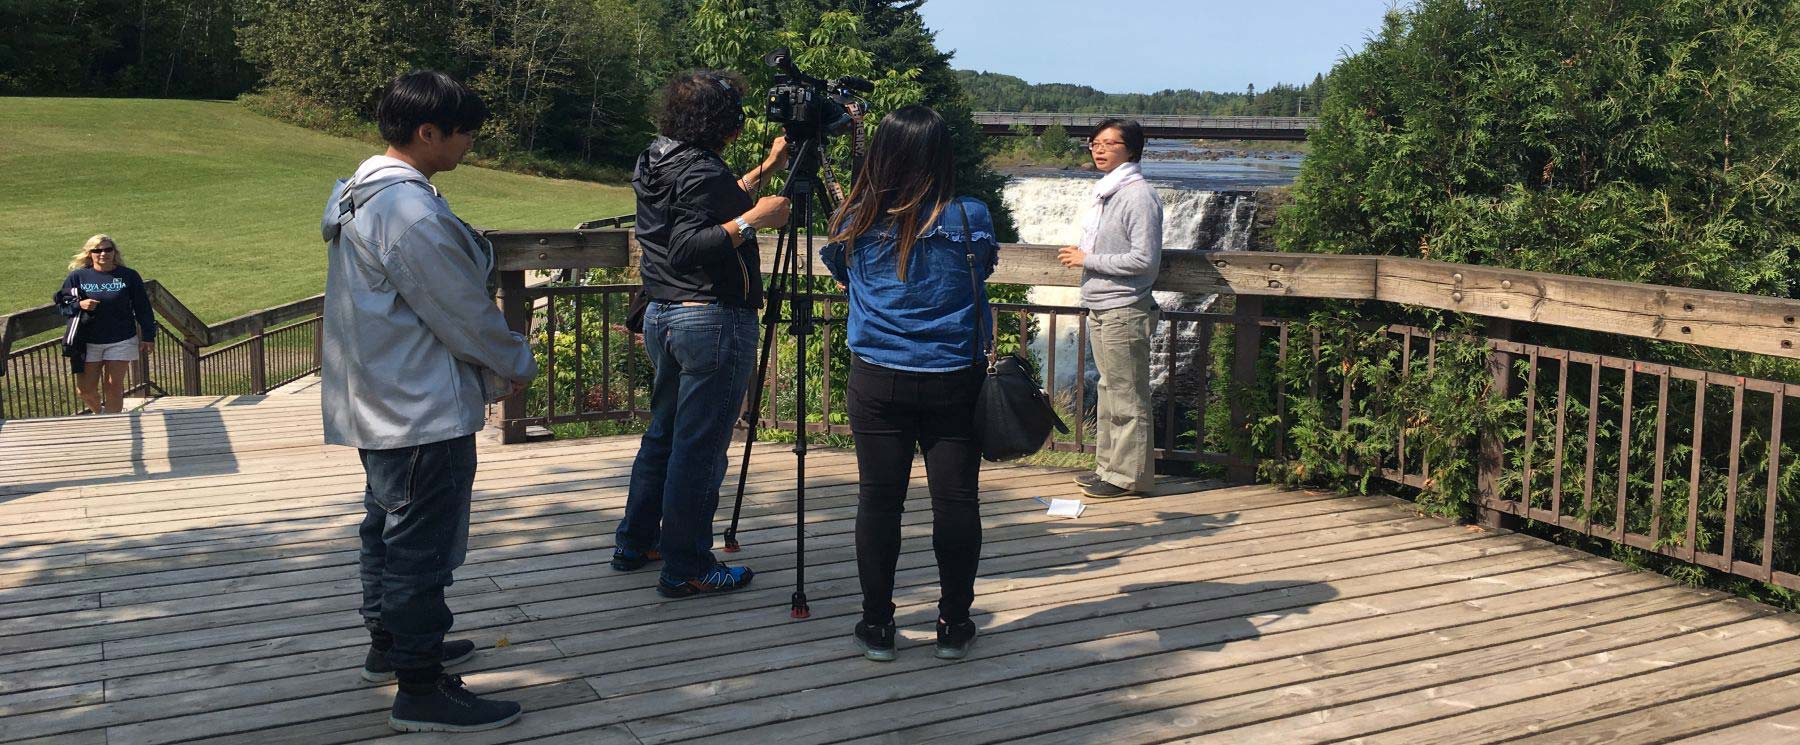 Travel media at kakabeka falls